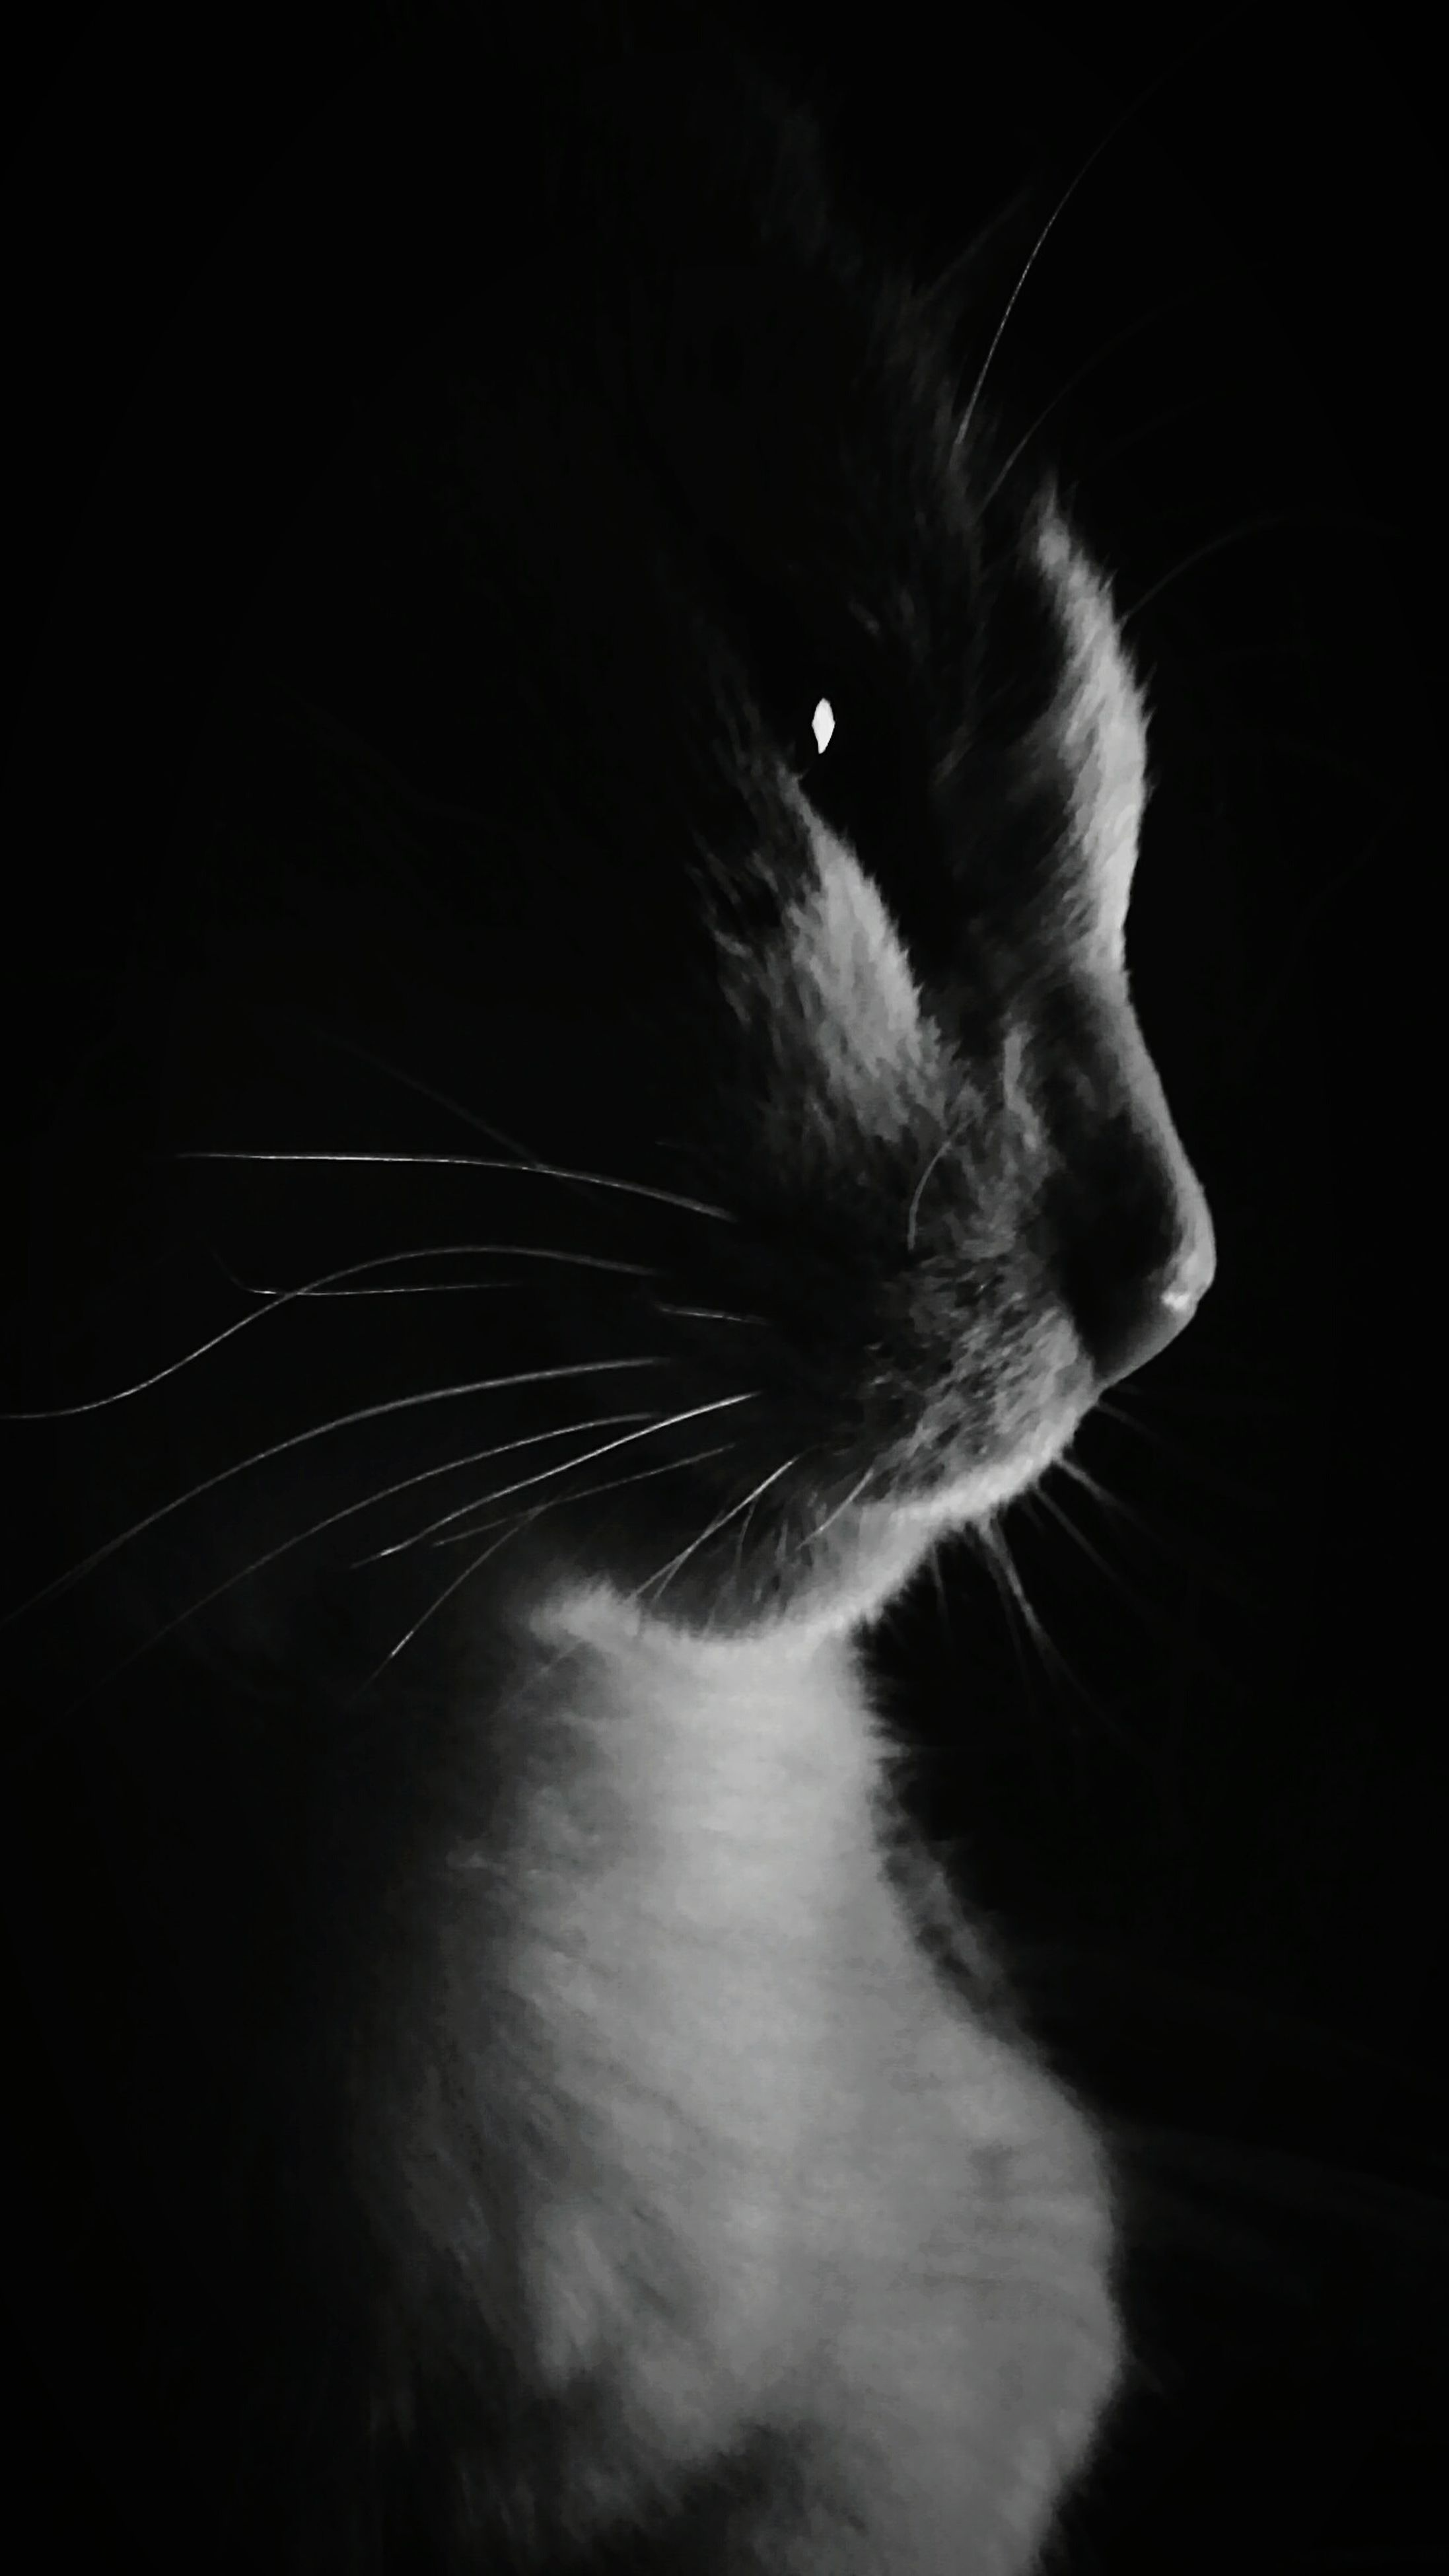 one animal, black background, animal themes, pets, domestic cat, animal body part, close-up, mammal, domestic animals, feline, no people, indoors